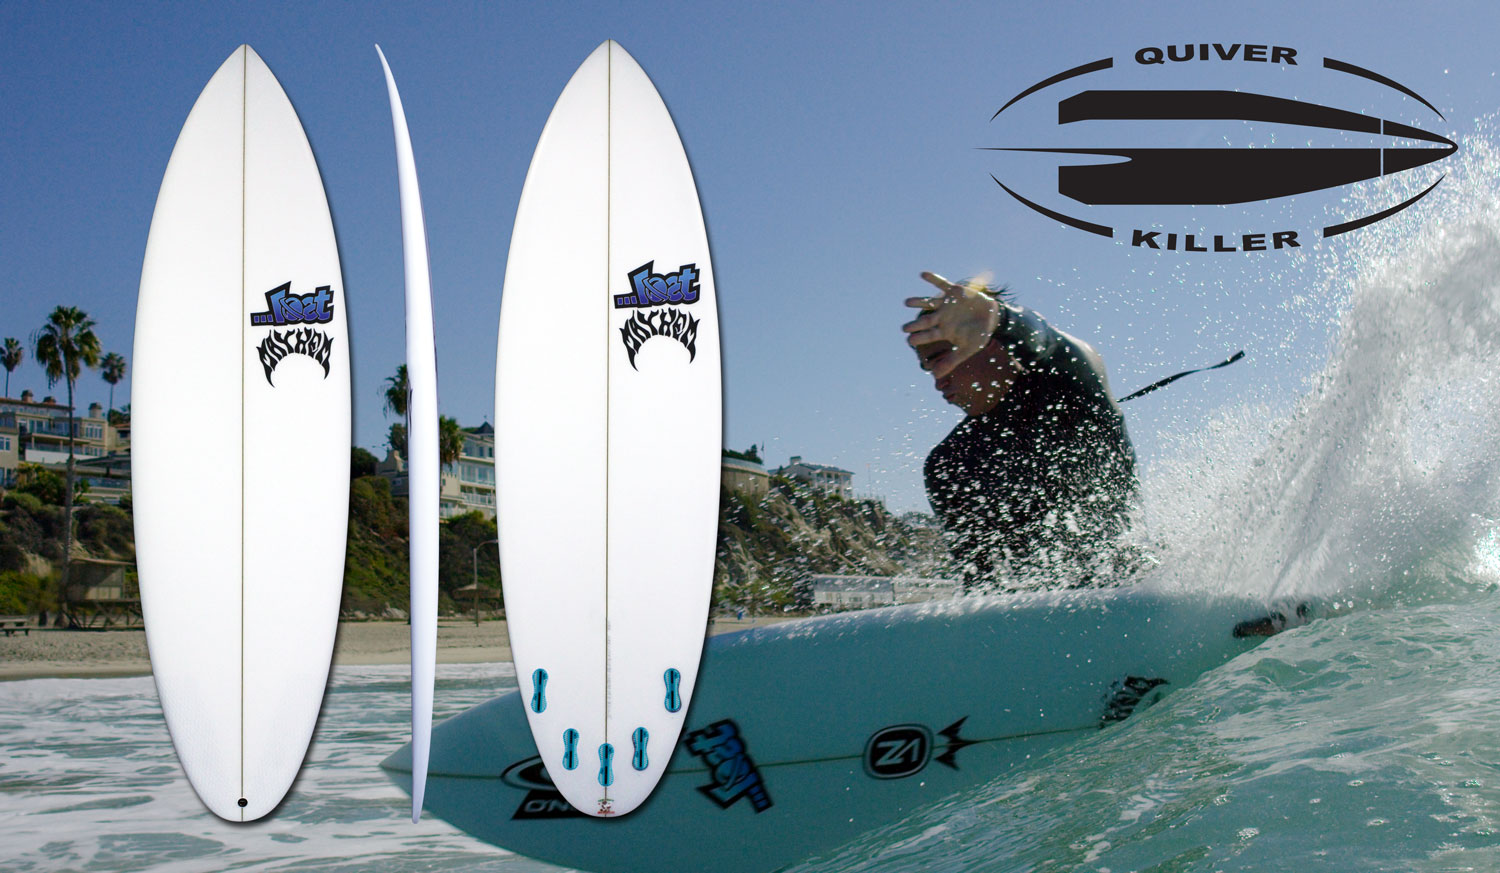 Lost Quiver Killer Surfboard